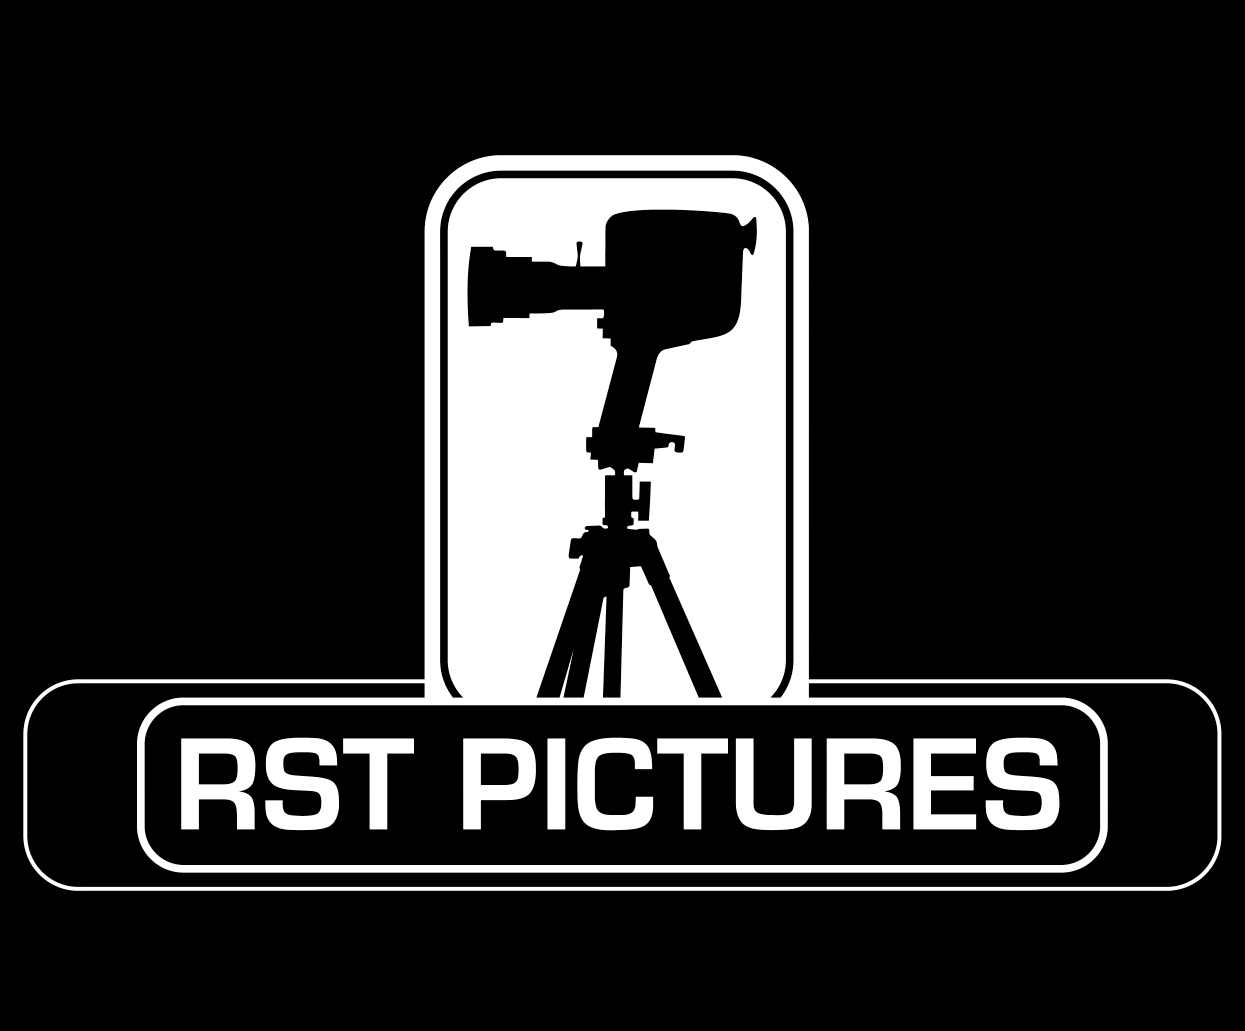 RST PICTURES